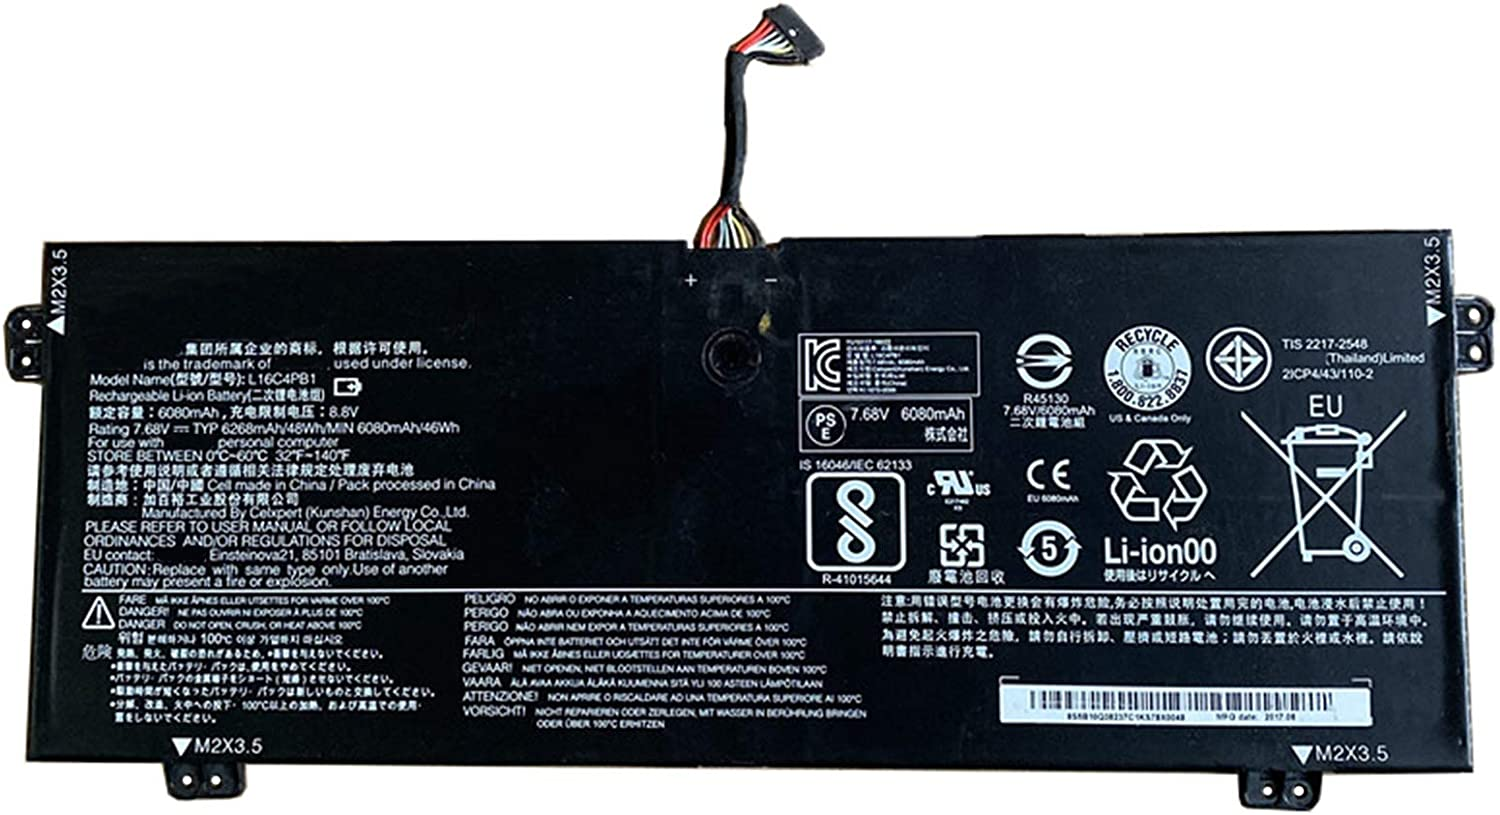 Dentsing L16C4PB1 (7.68V 48Wh/6080mAh 4-Cells) Laptop Battery Compatible with Lenovo Yoga 720-13IKB 730-13IKB 730-13IWL Series Notebook L16L4PB1 L16M4PB1 2ICP4/43/110-2